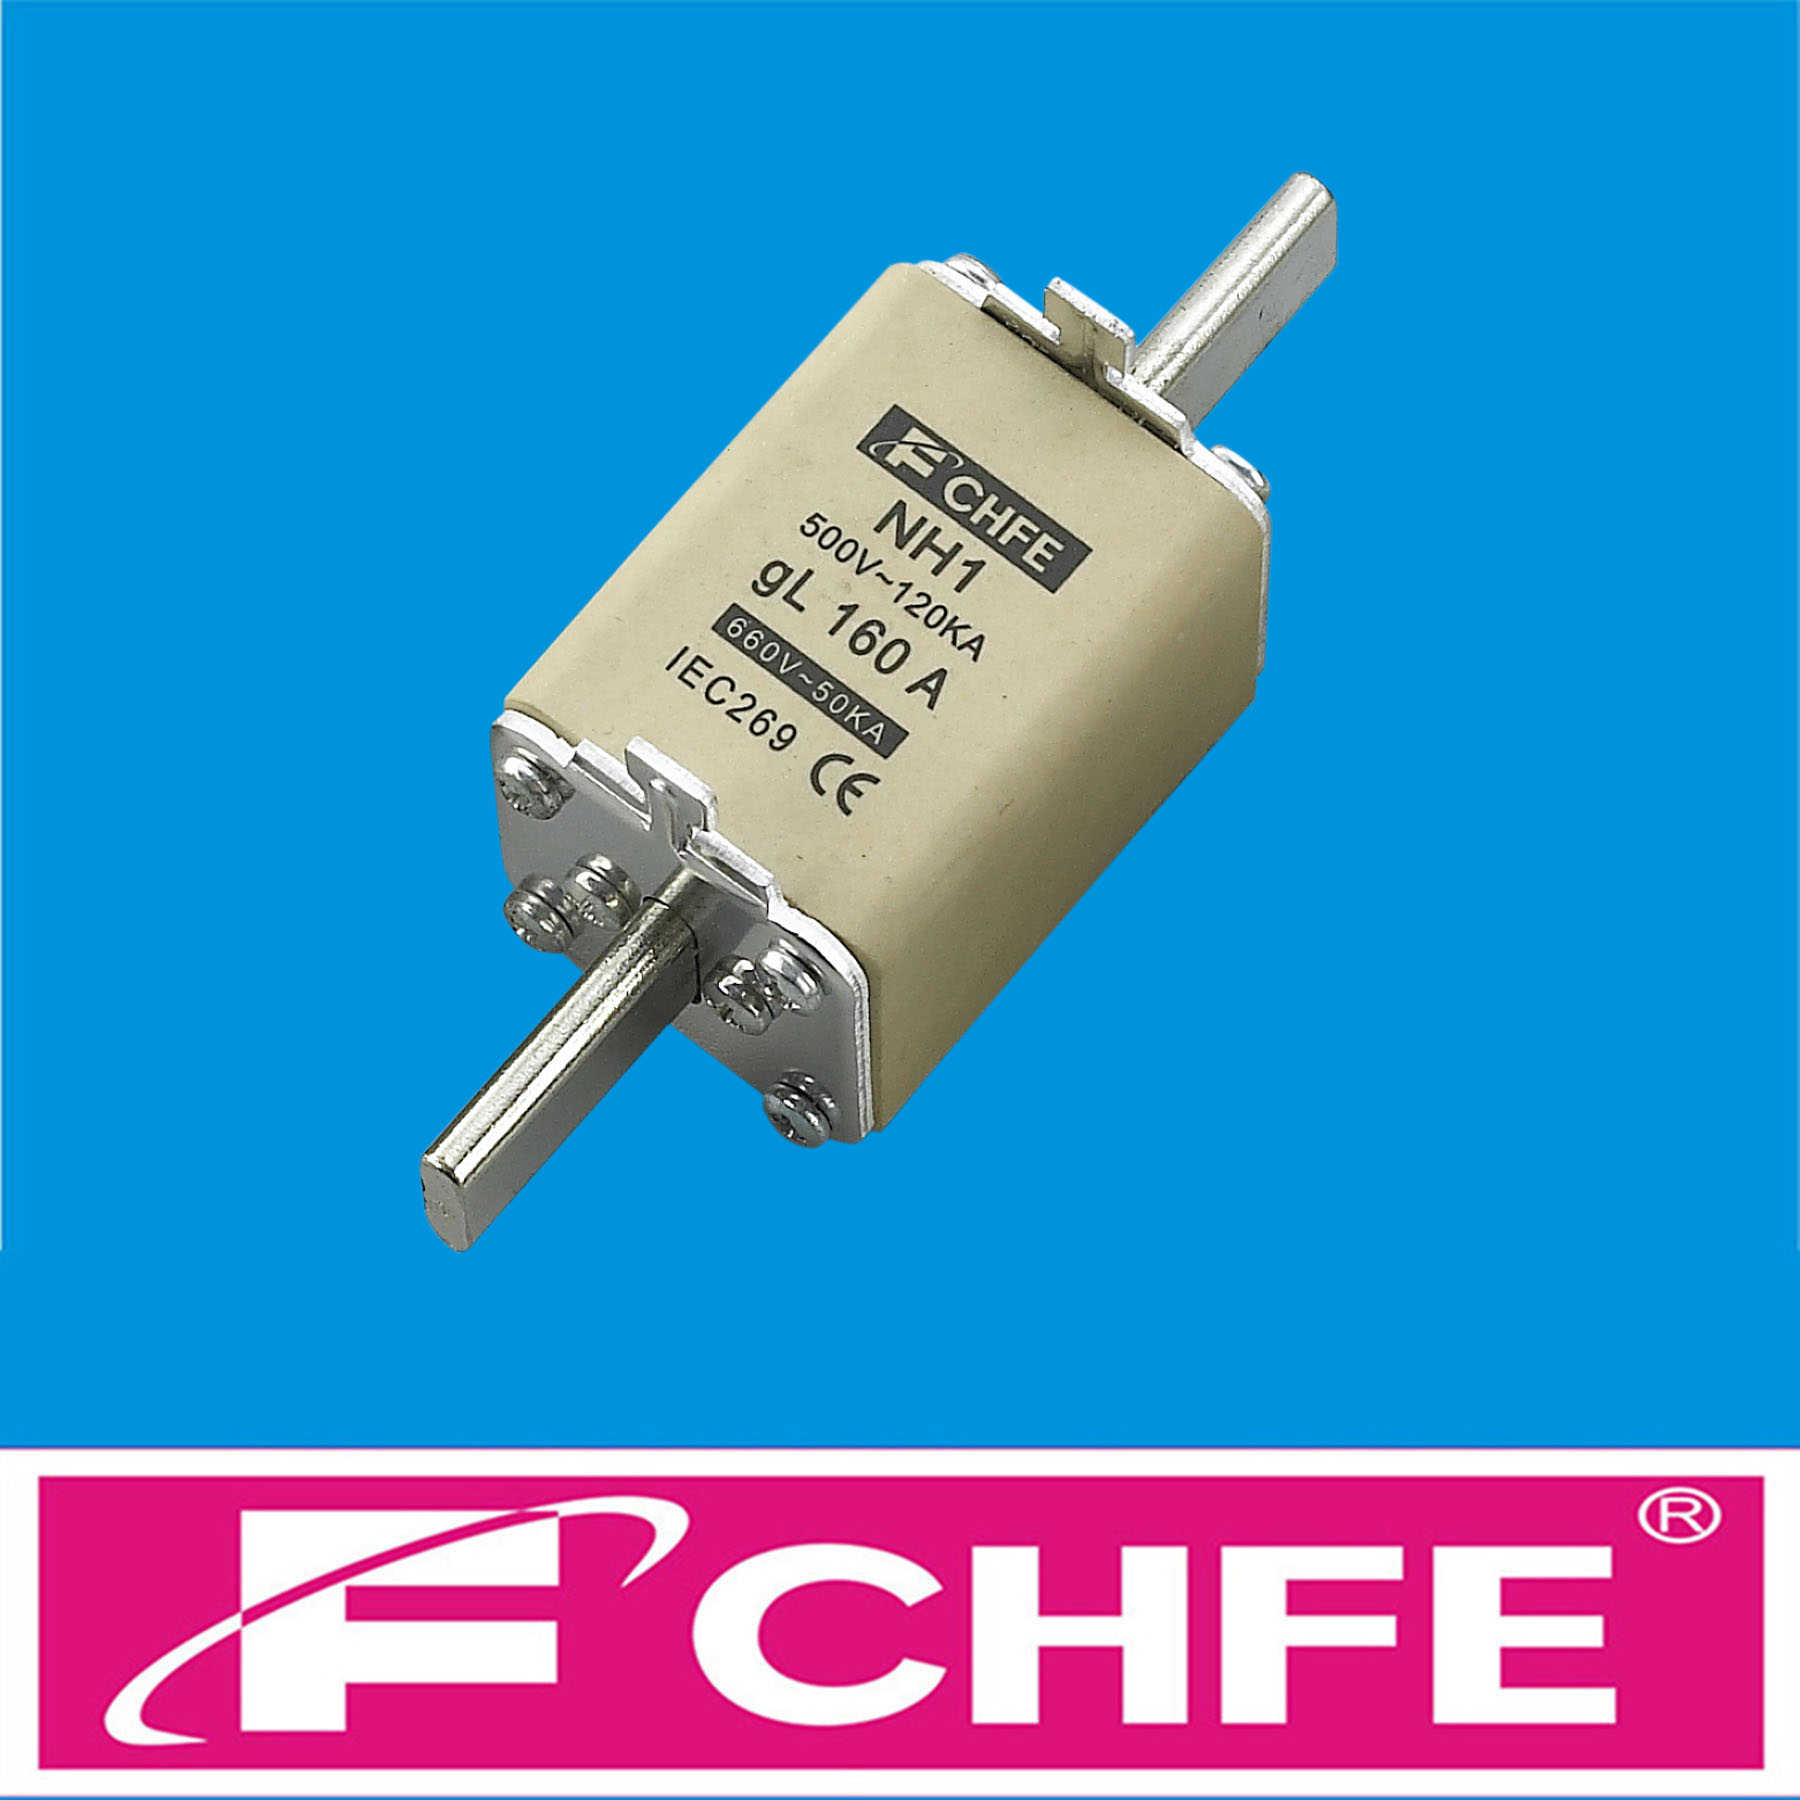 NH1 (NT1) Knife blade fuse 125A CHFE Brand China fuse